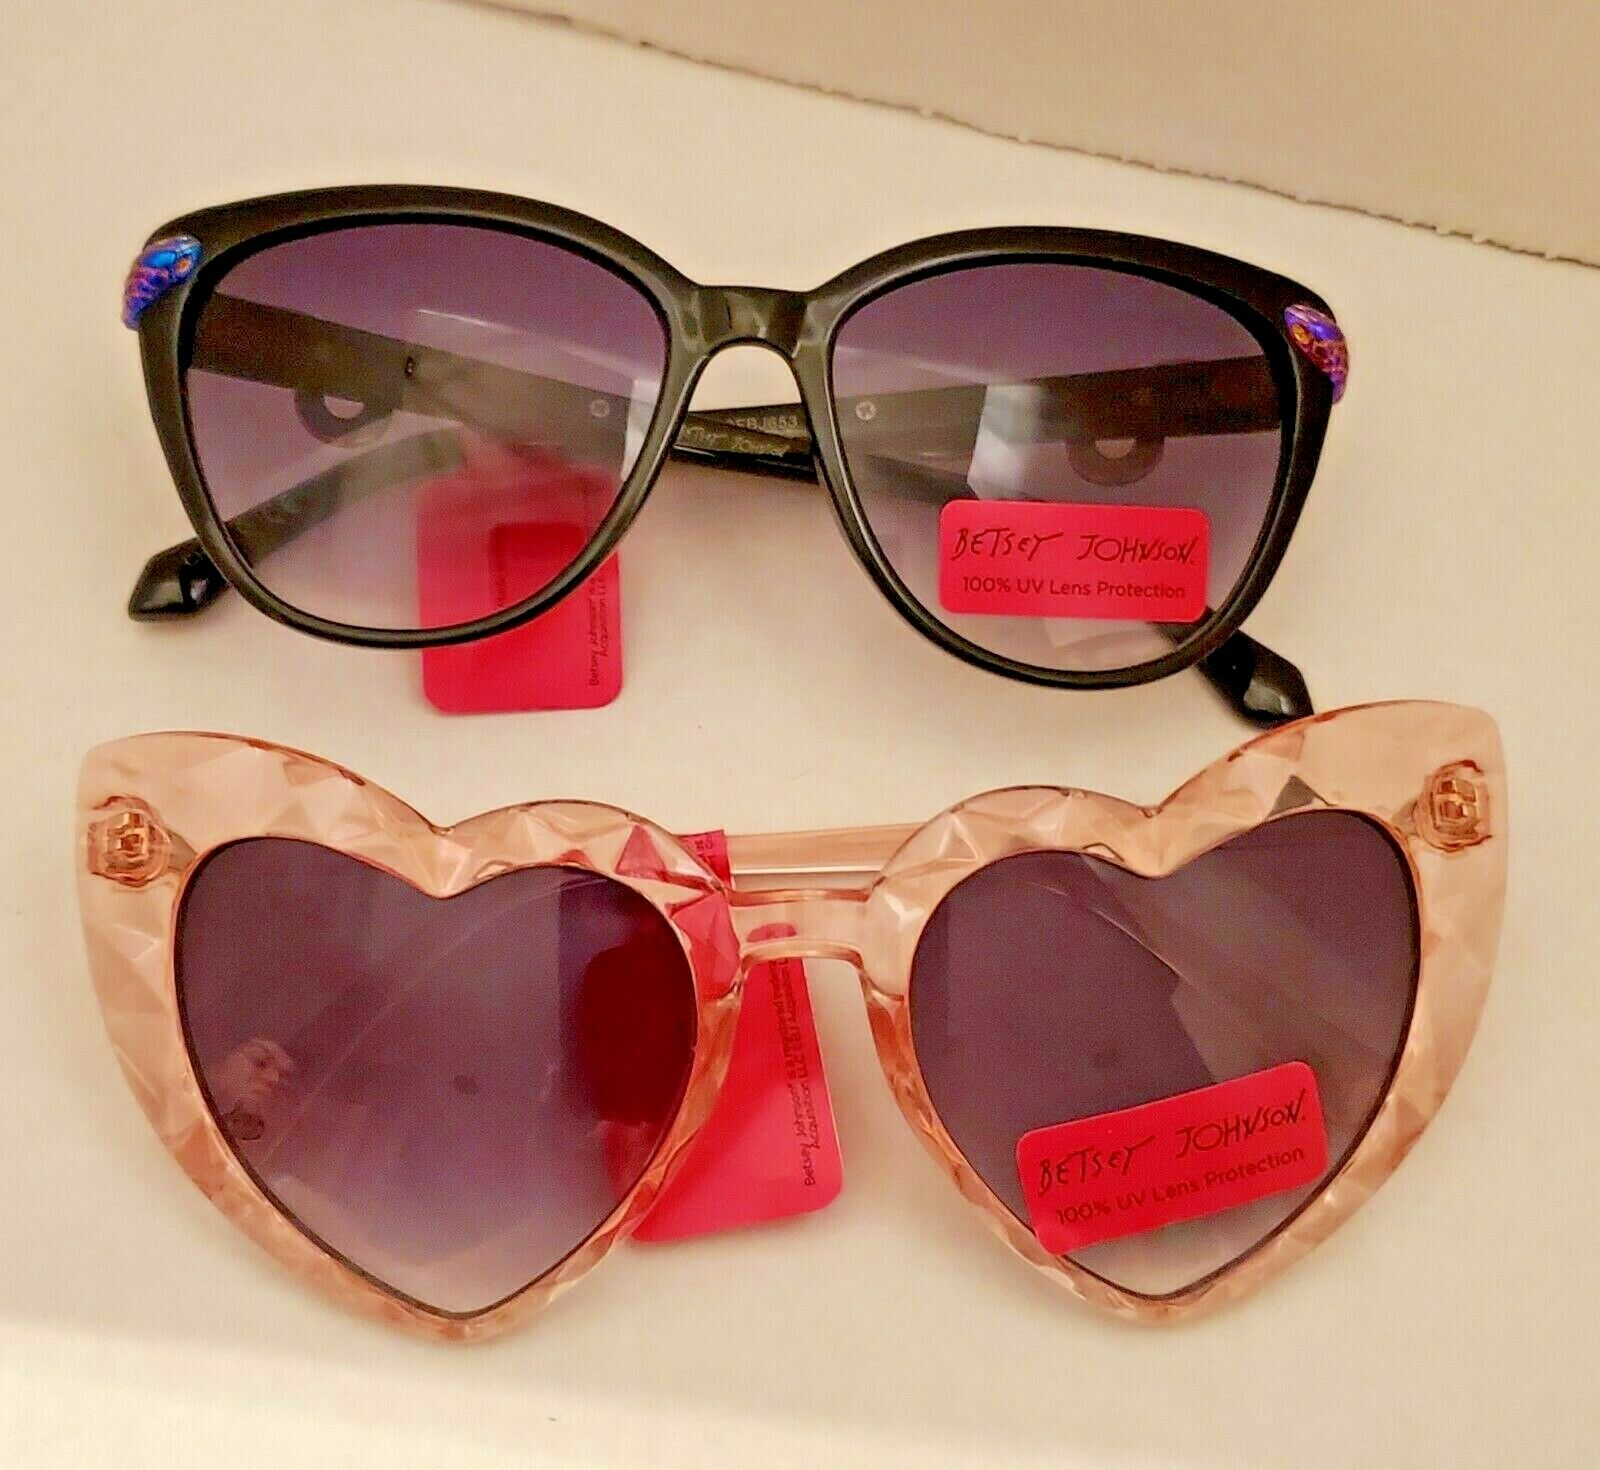 NWT Betsey Johnson Sunglasses 2 Pairs Slithering Around Black Crystal Clear Pink